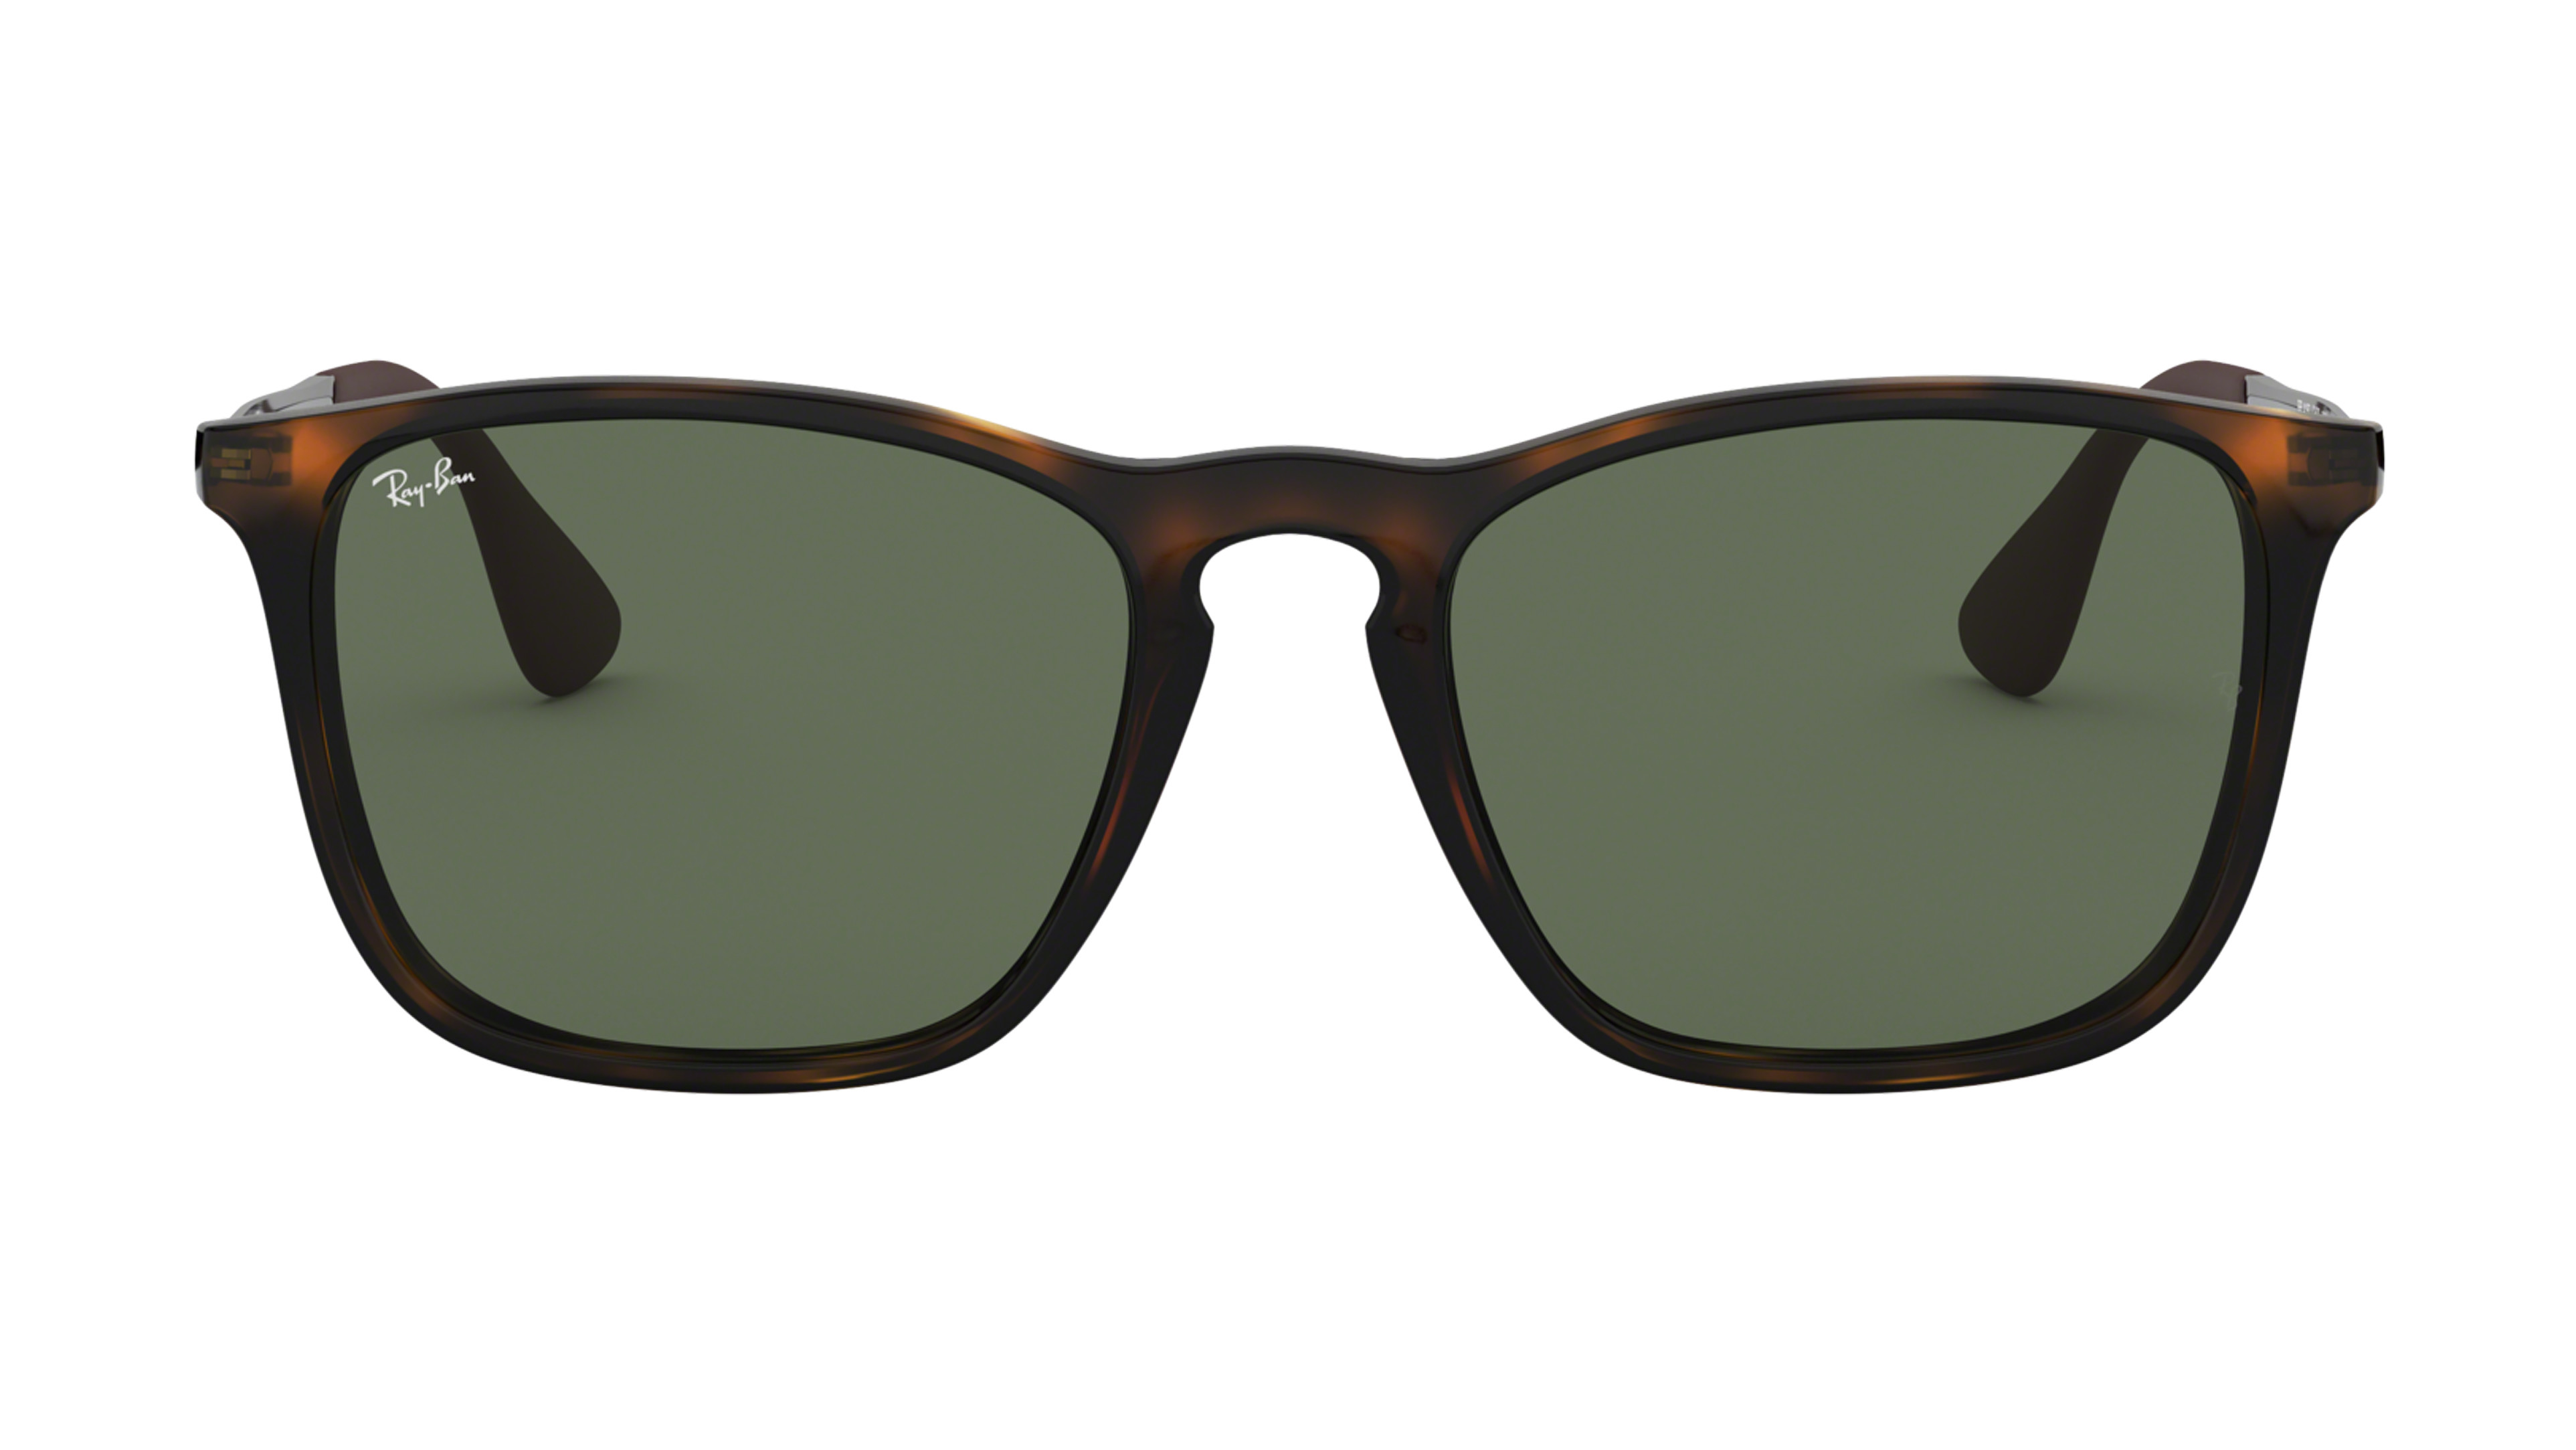 8053672475937_Front_RayBan